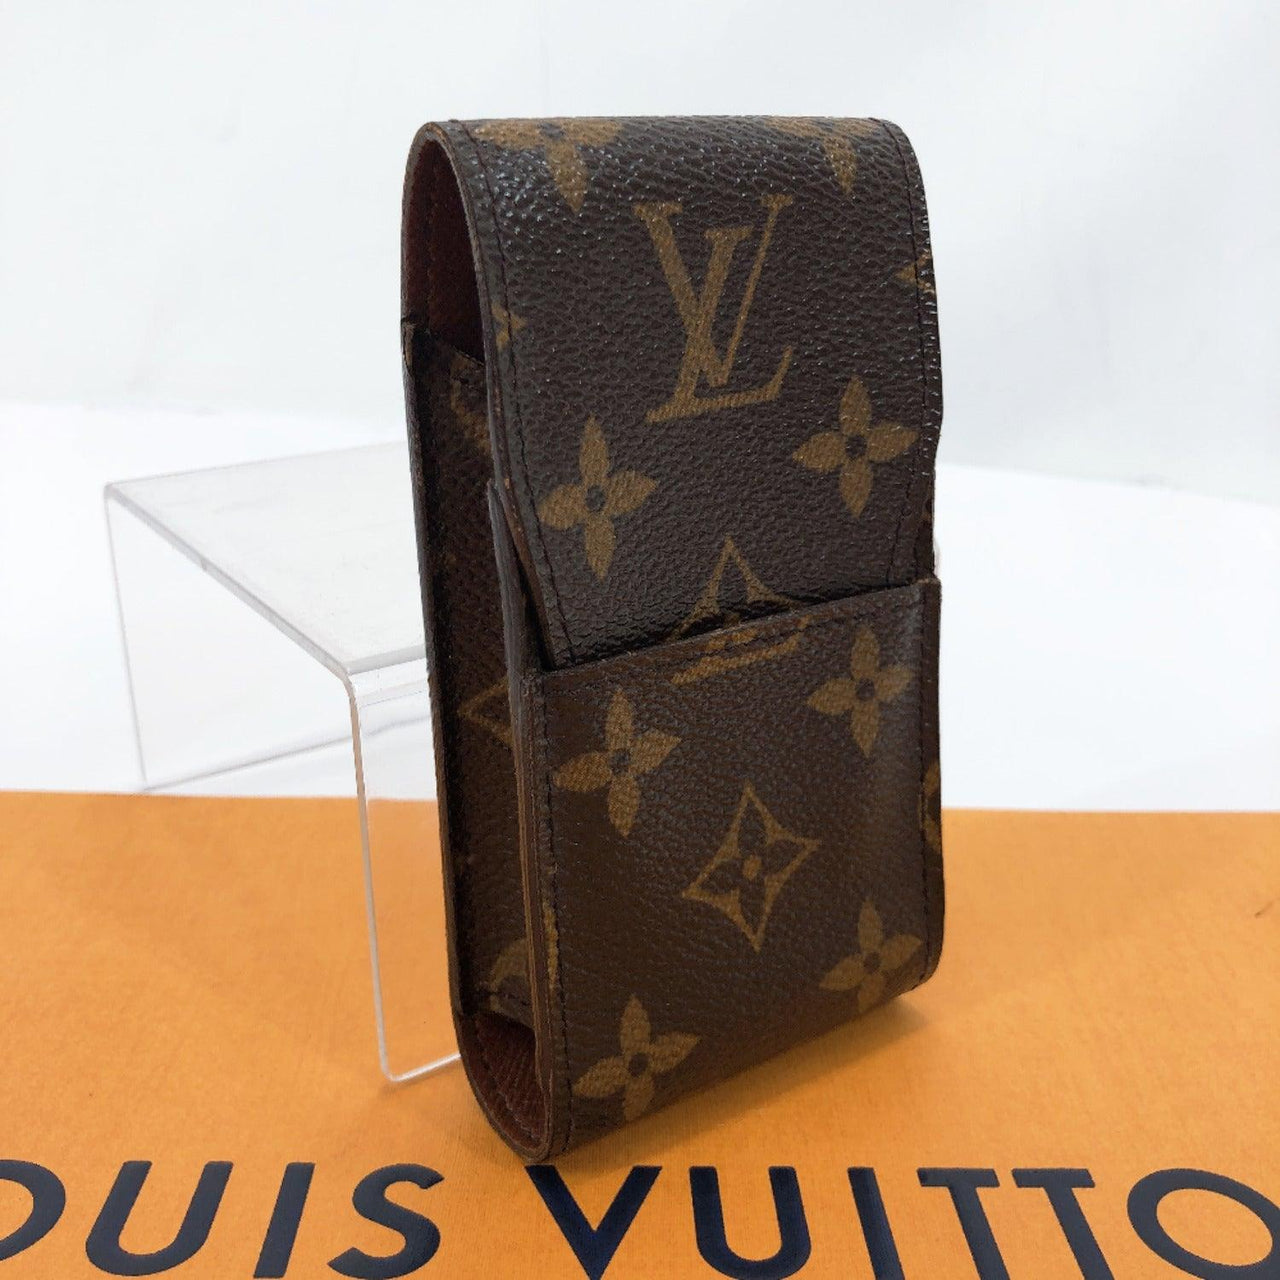 LOUIS VUITTON Other accessories M63024 Etui cigarette case Monogram canvas Brown Used